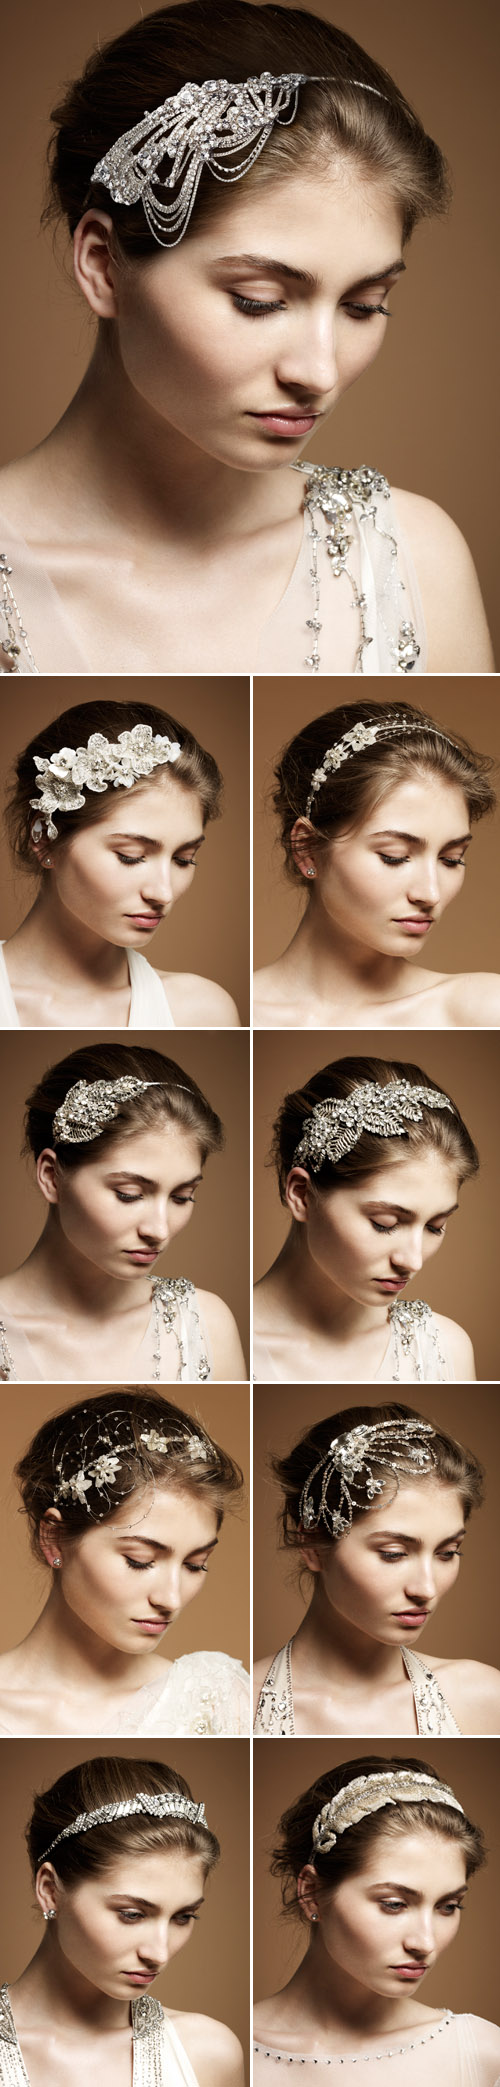 vintage inspired wedding hair accessories from jenny Packham